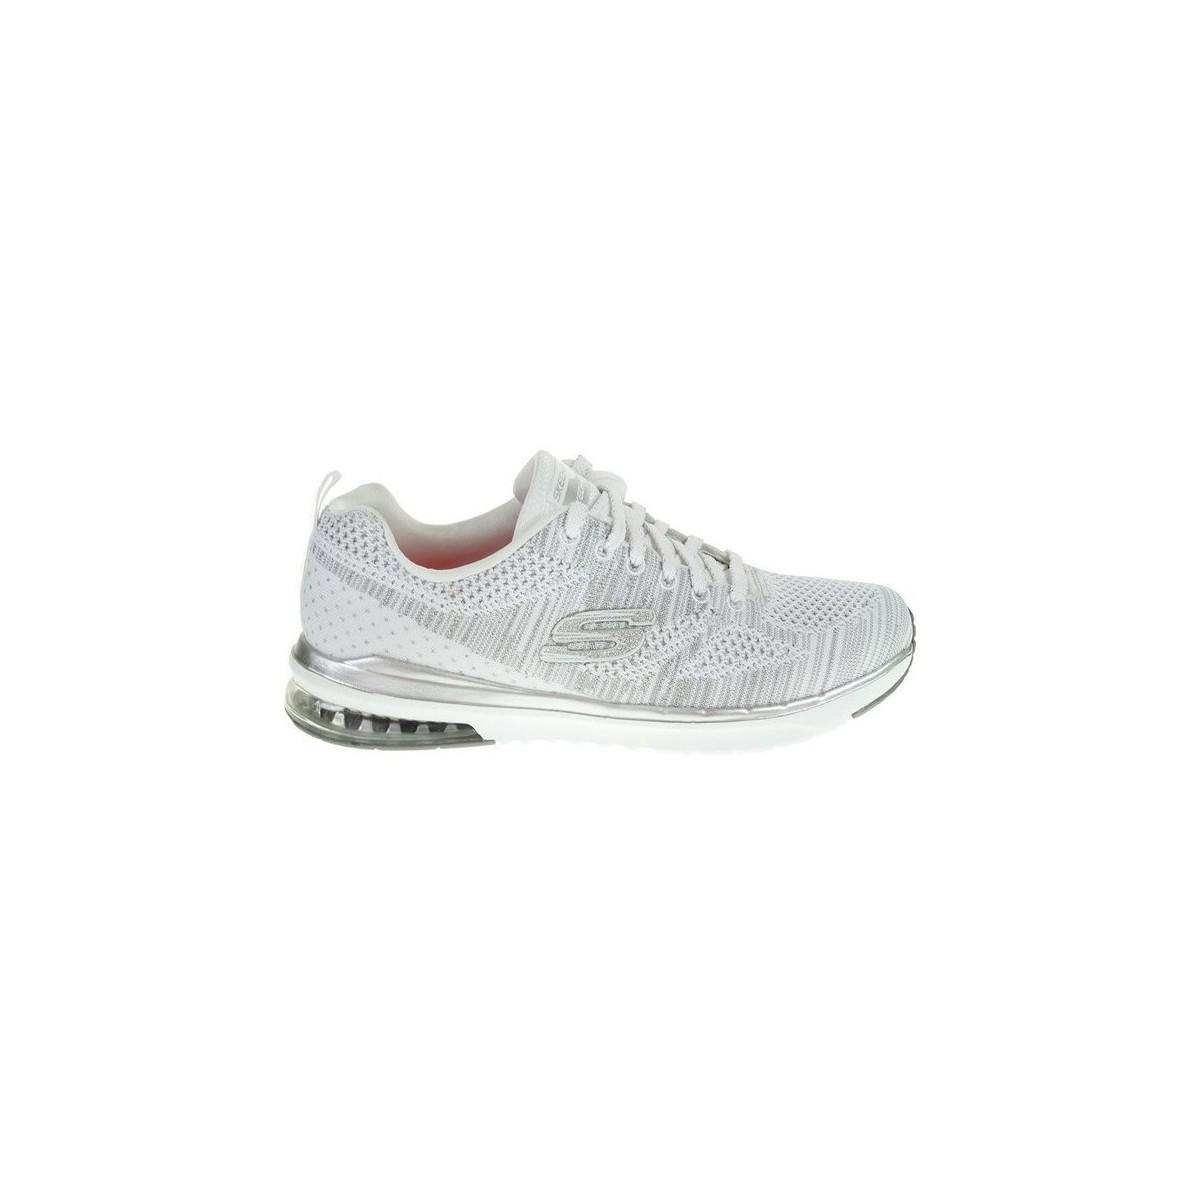 Skechers Skech Air Infinity Stand Out Women's Shoes